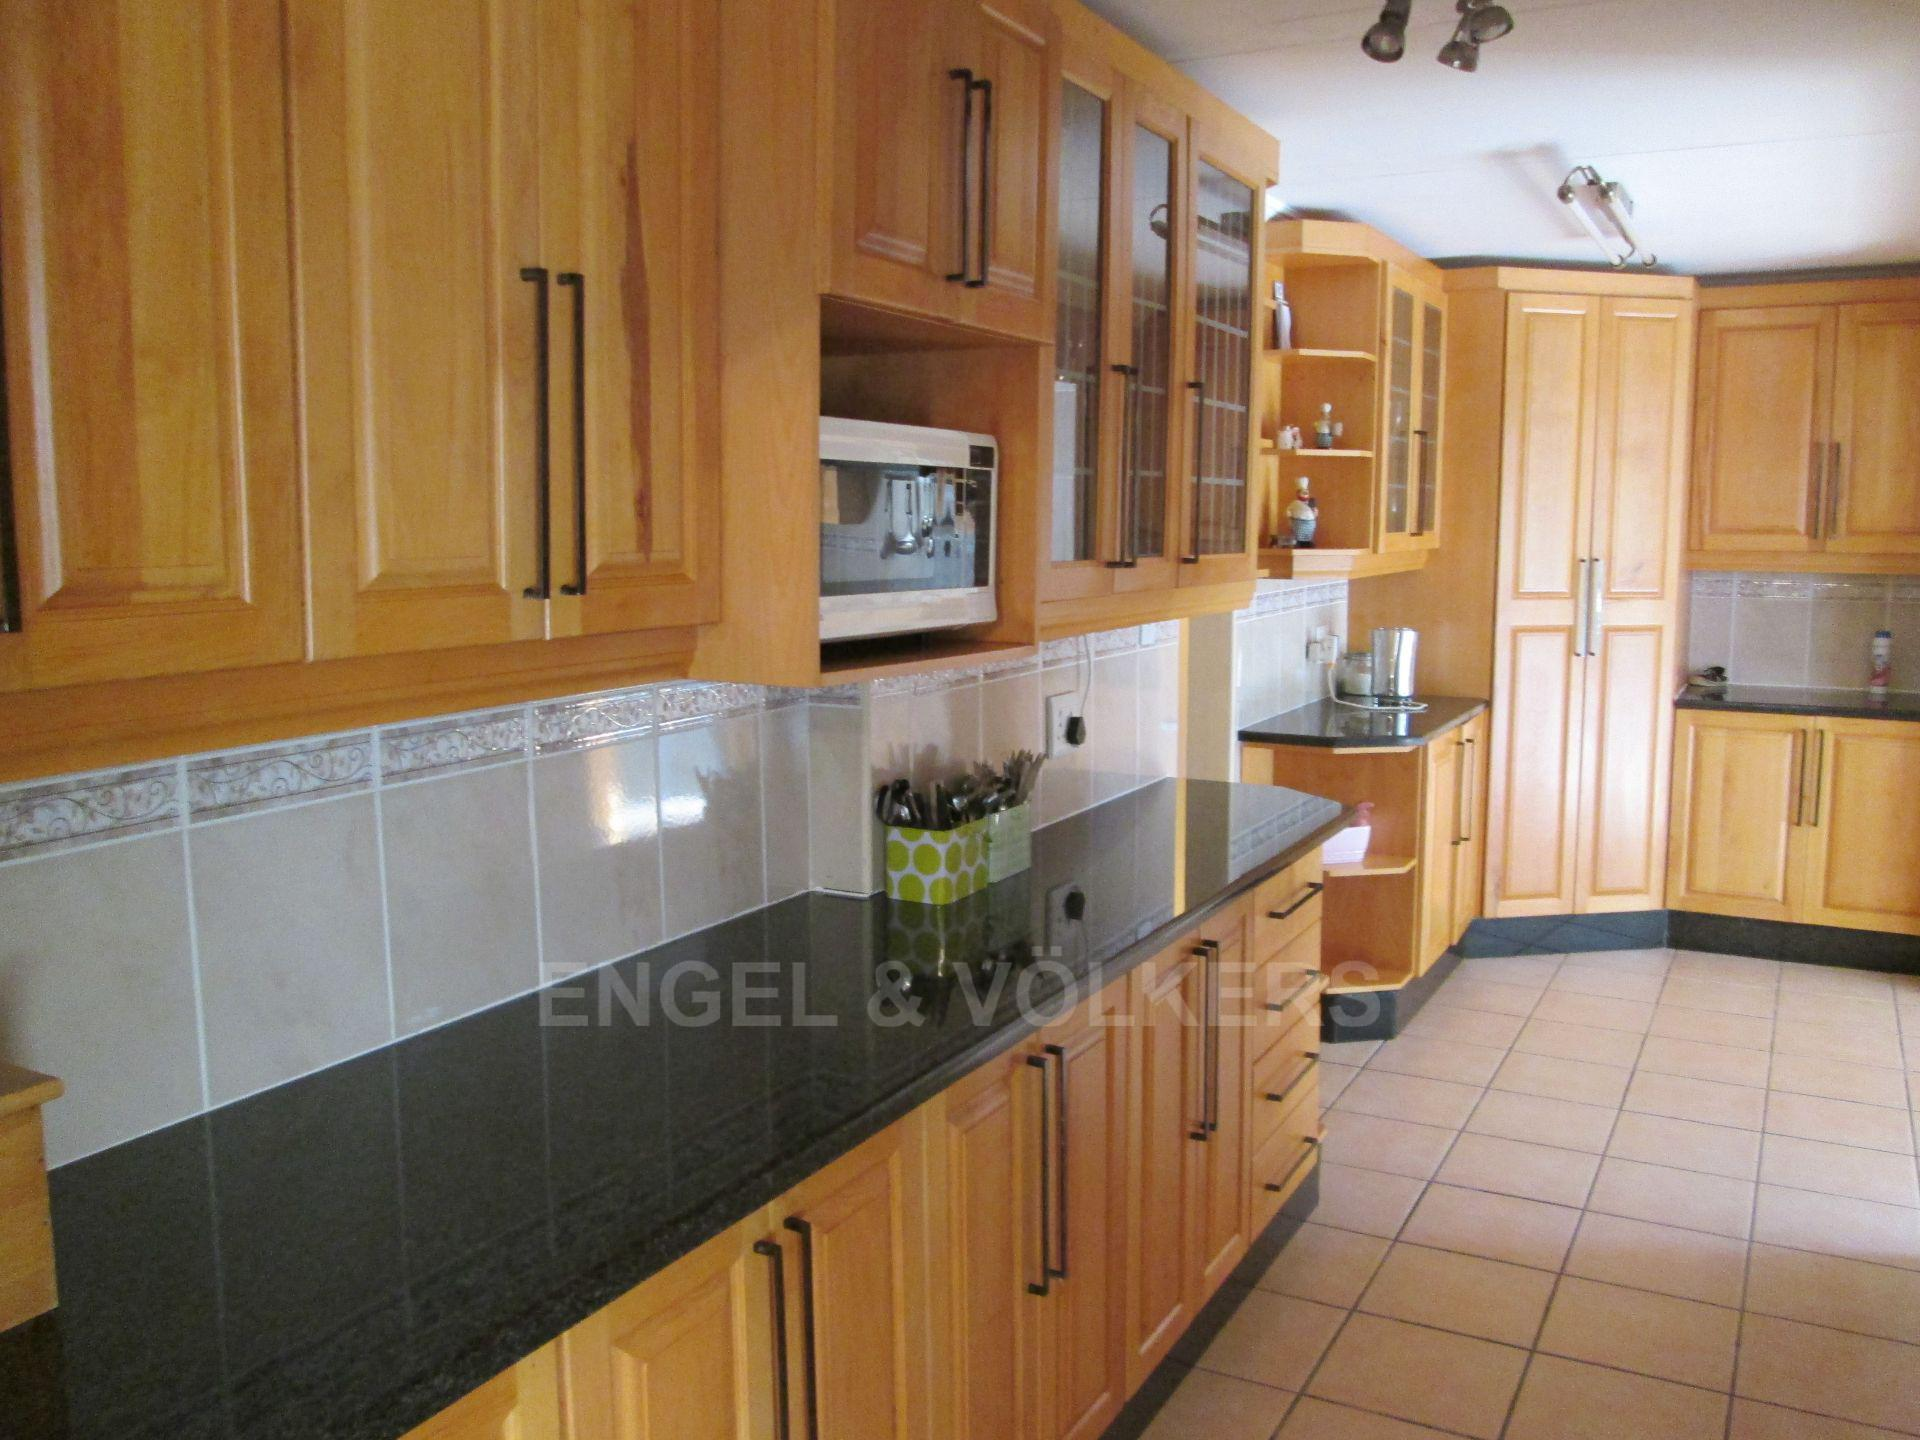 Southbroom property for sale. Ref No: 13502158. Picture no 3